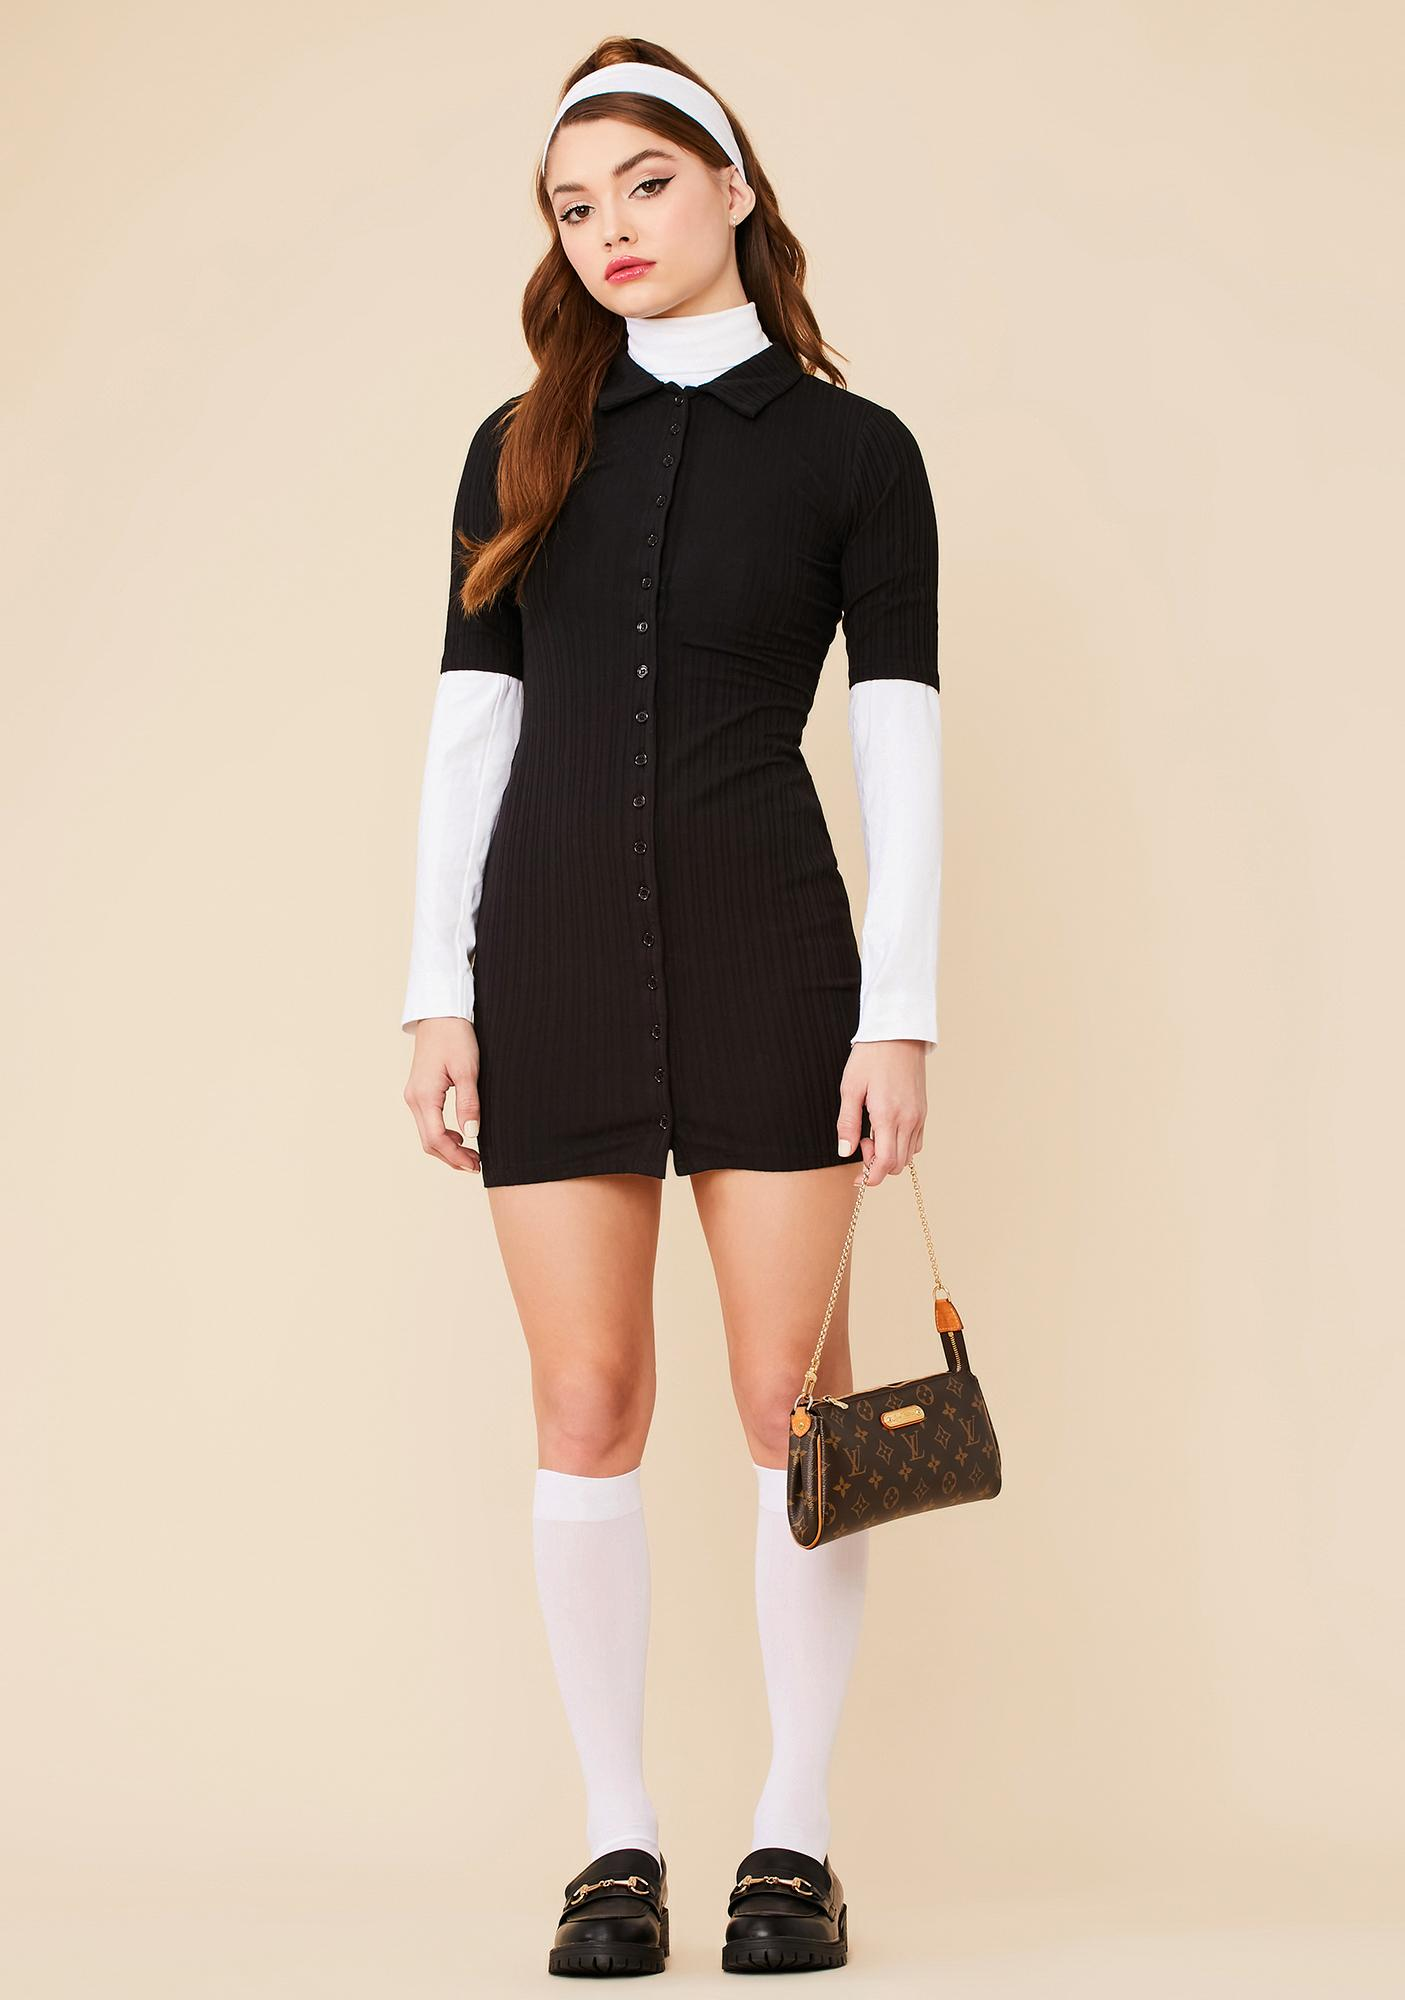 Bet On This Button Down Dress